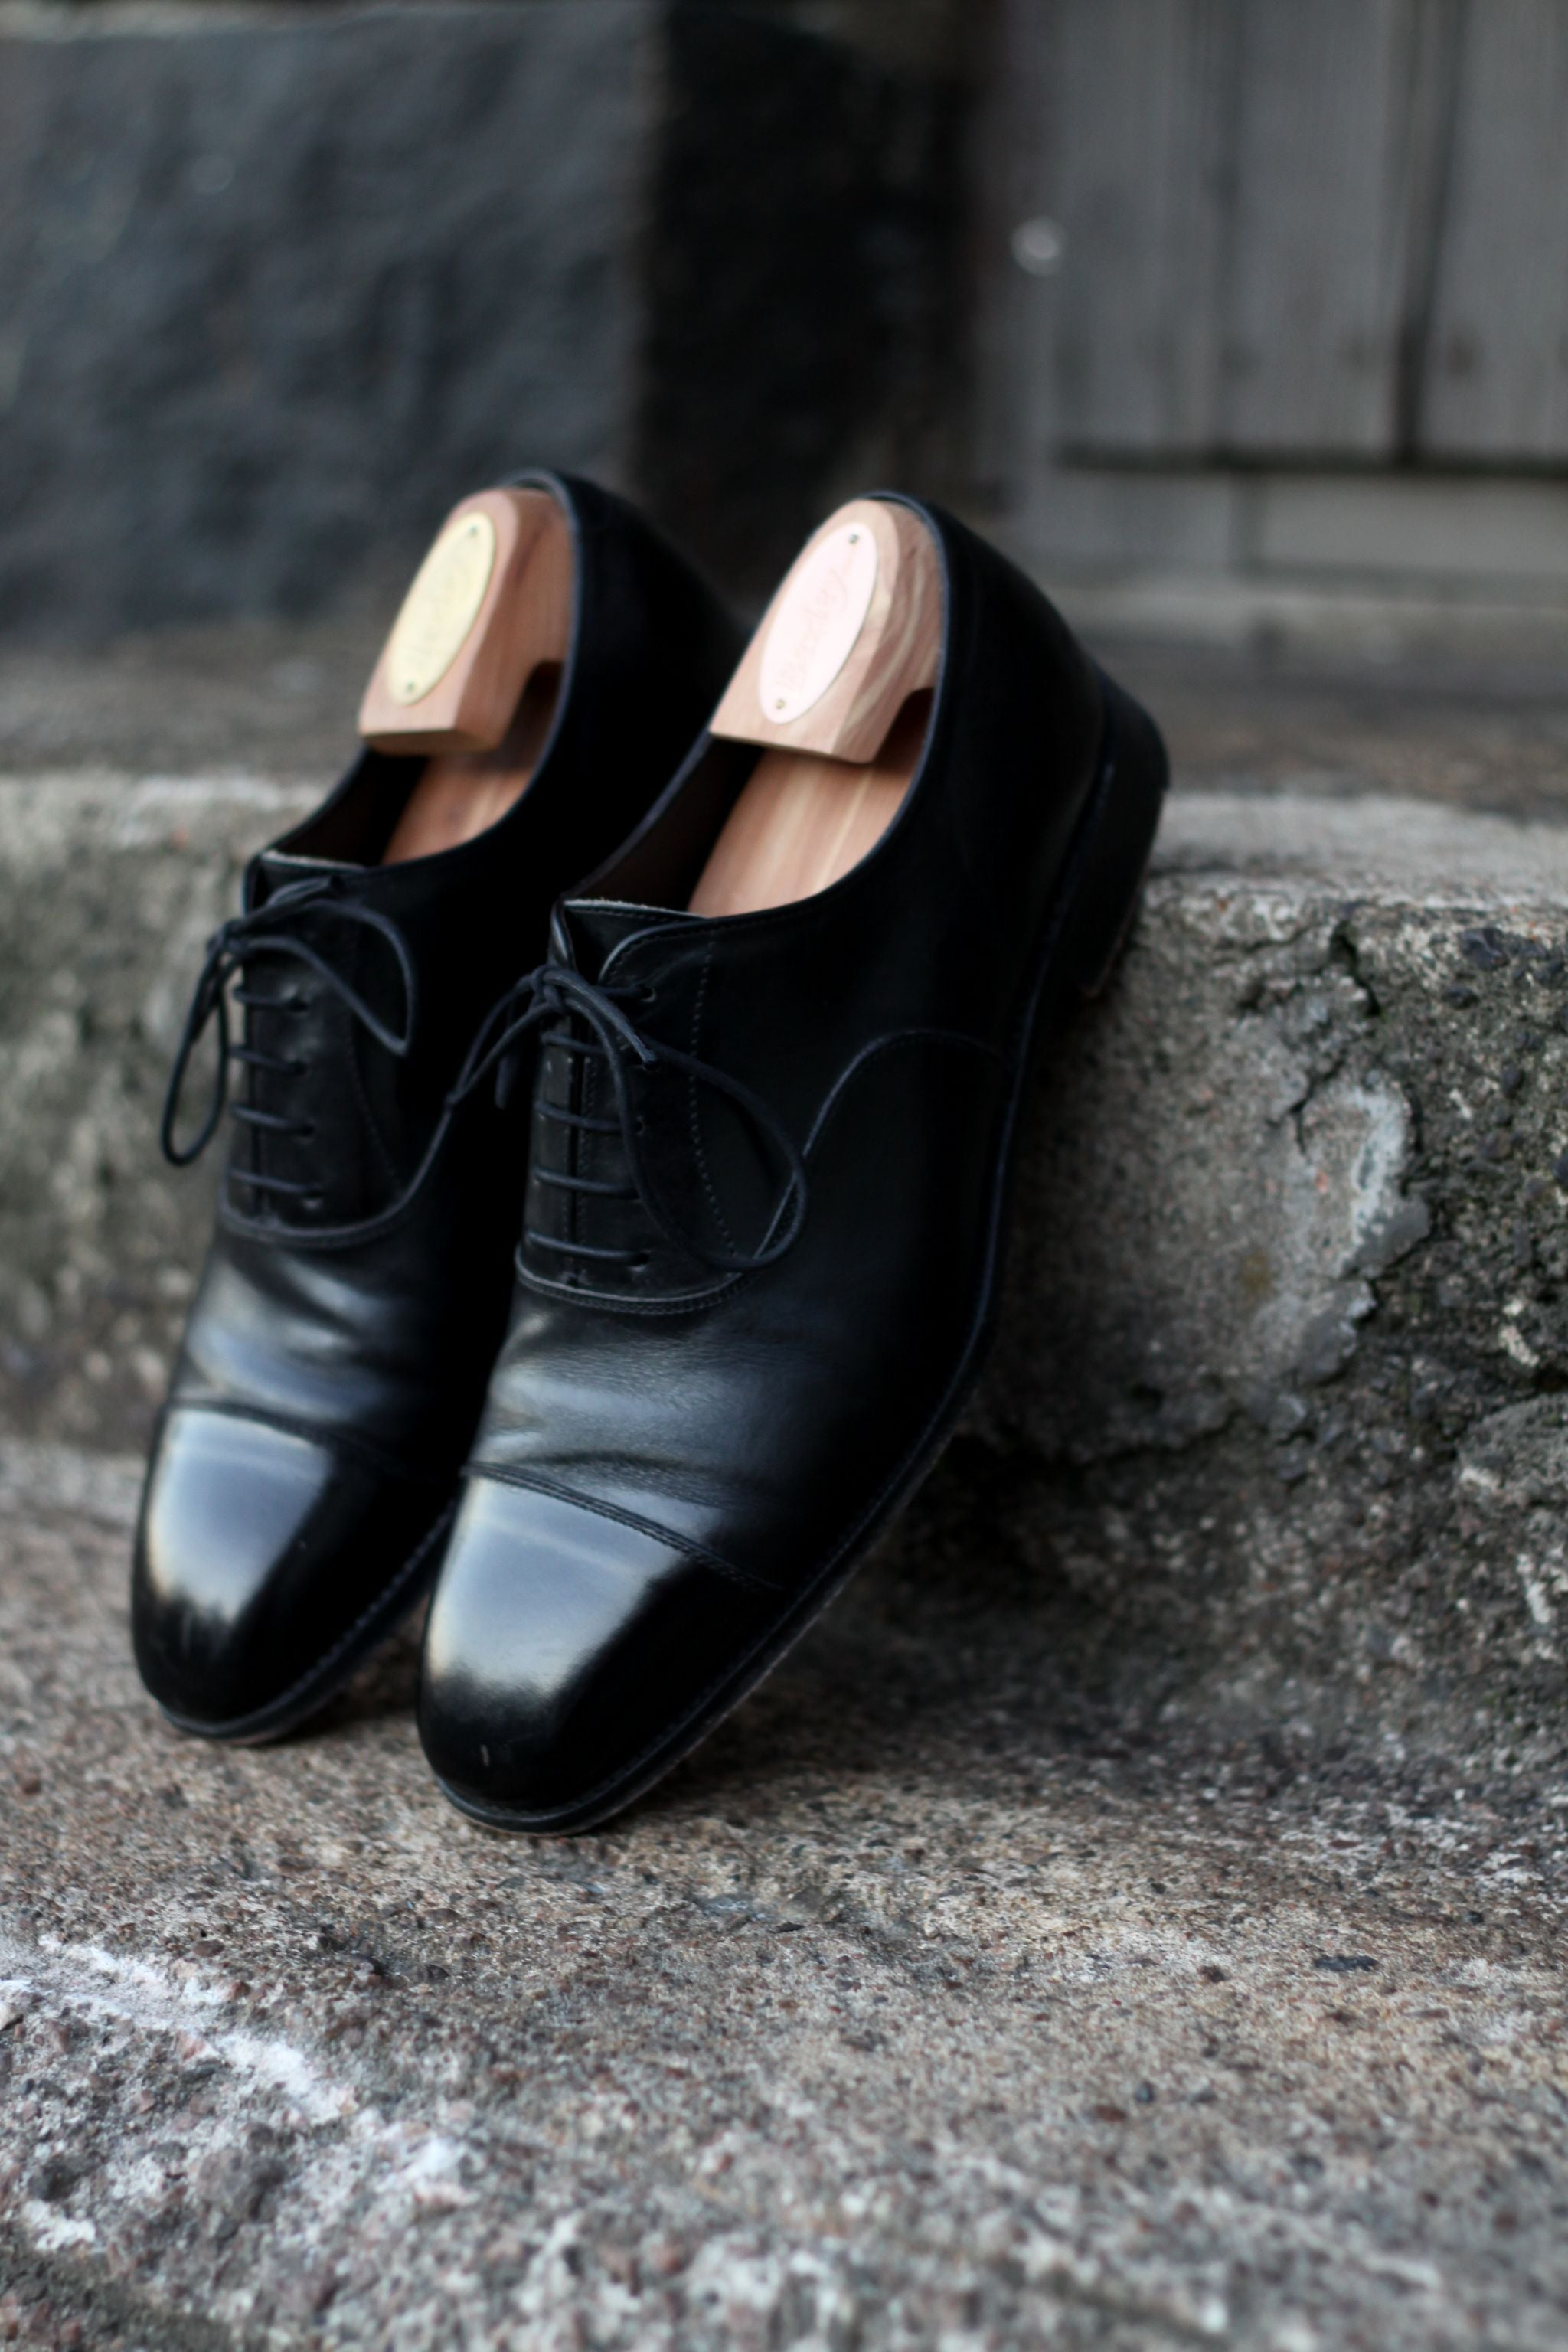 Black cap toe oxfords by Alfred Sargent